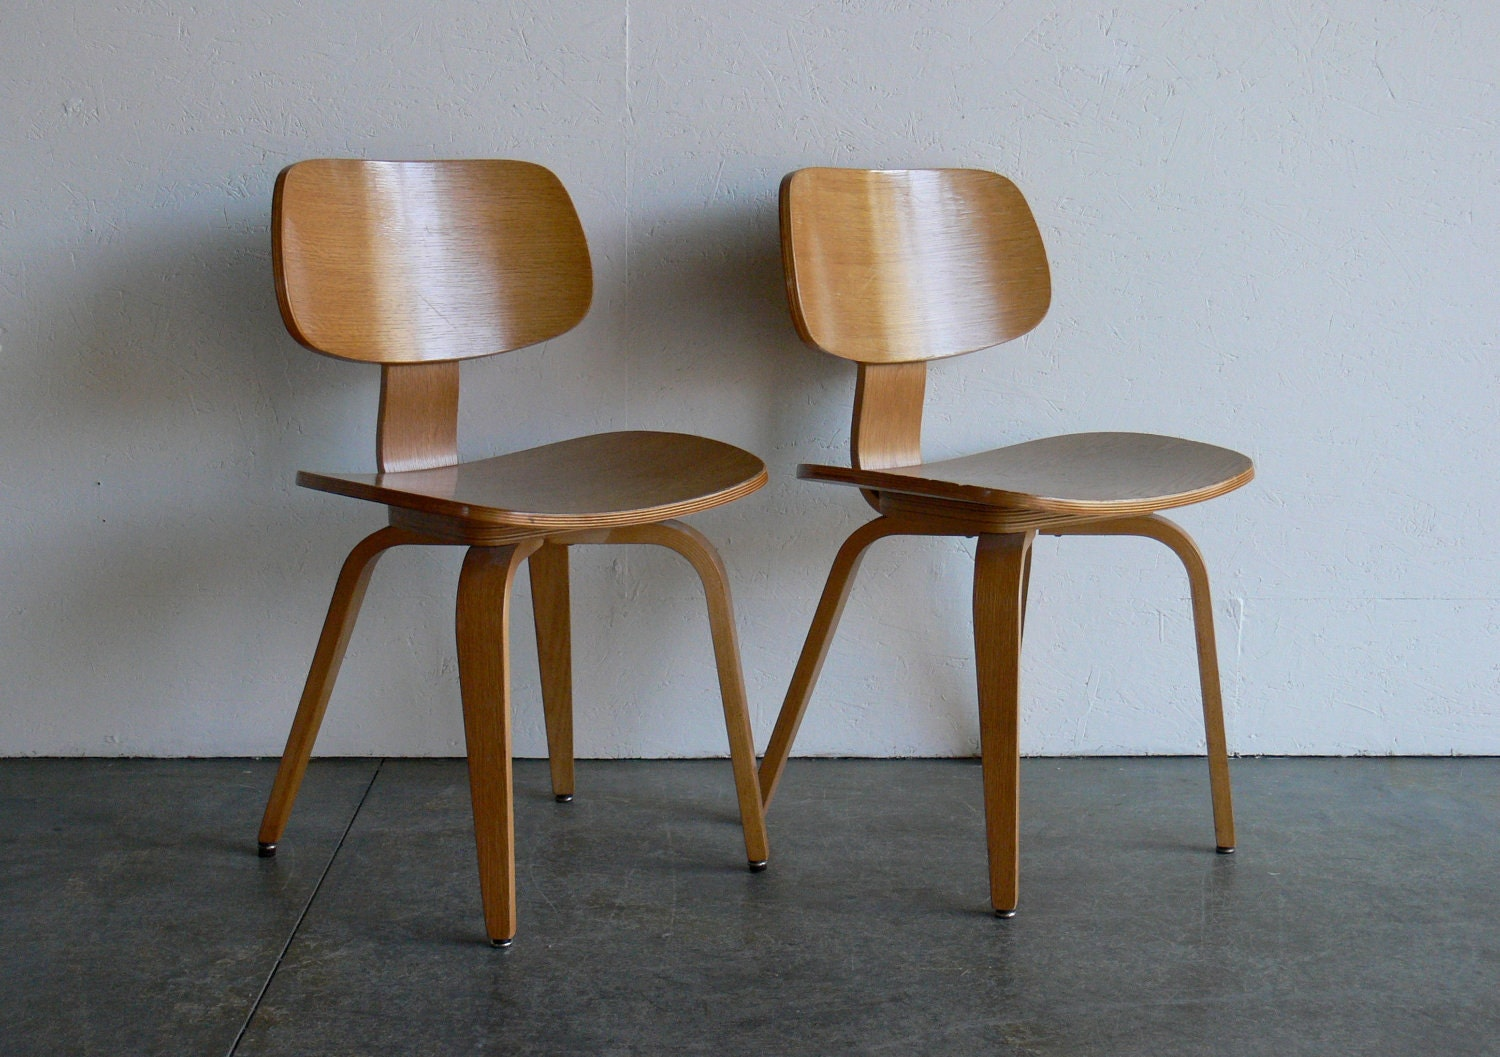 Reserved vintage mid century modern thonet plywood chair by comod